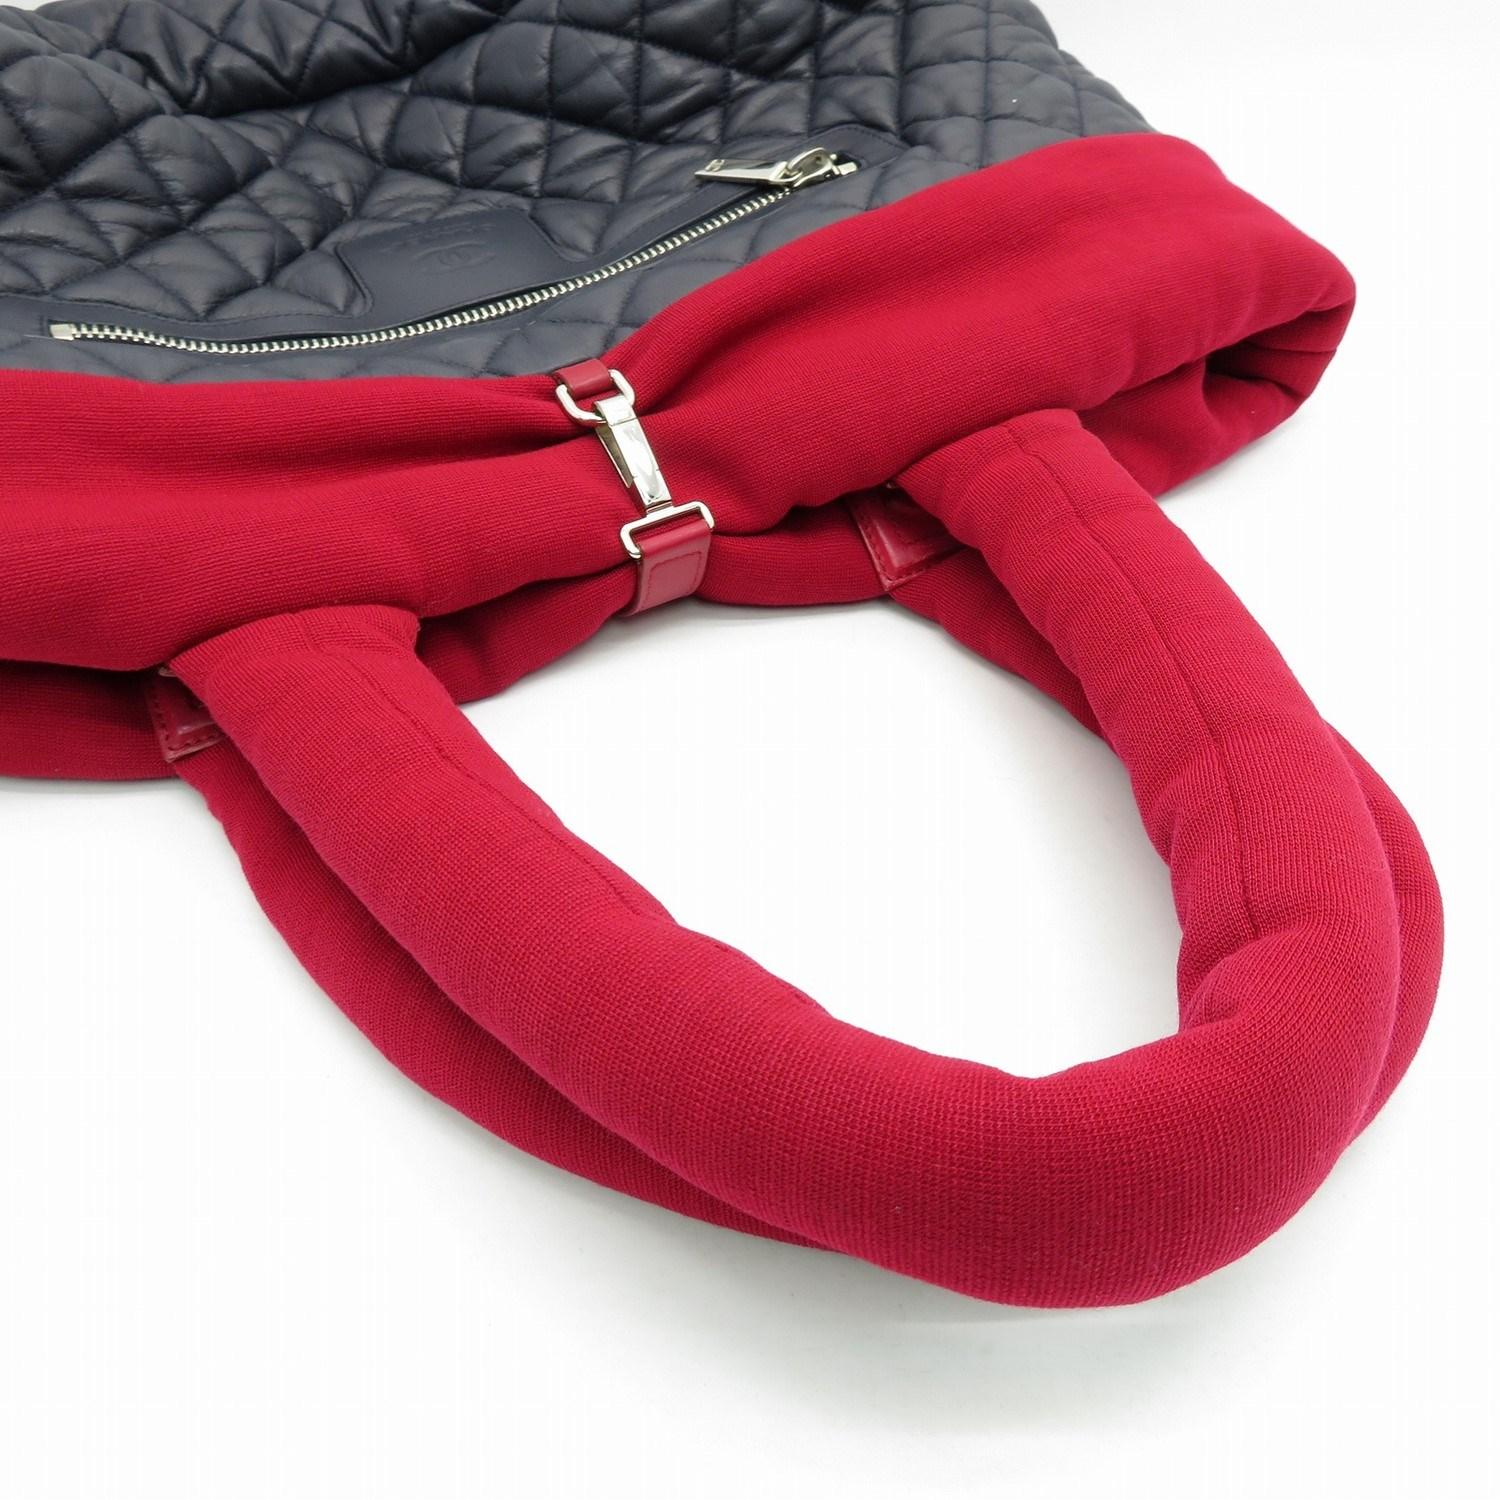 5c492d0b123387 Chanel - Matelasse Cc Coco Cocoon Tote Bag Lambskin Canvas Blue Red 0910 -  Lyst. View fullscreen